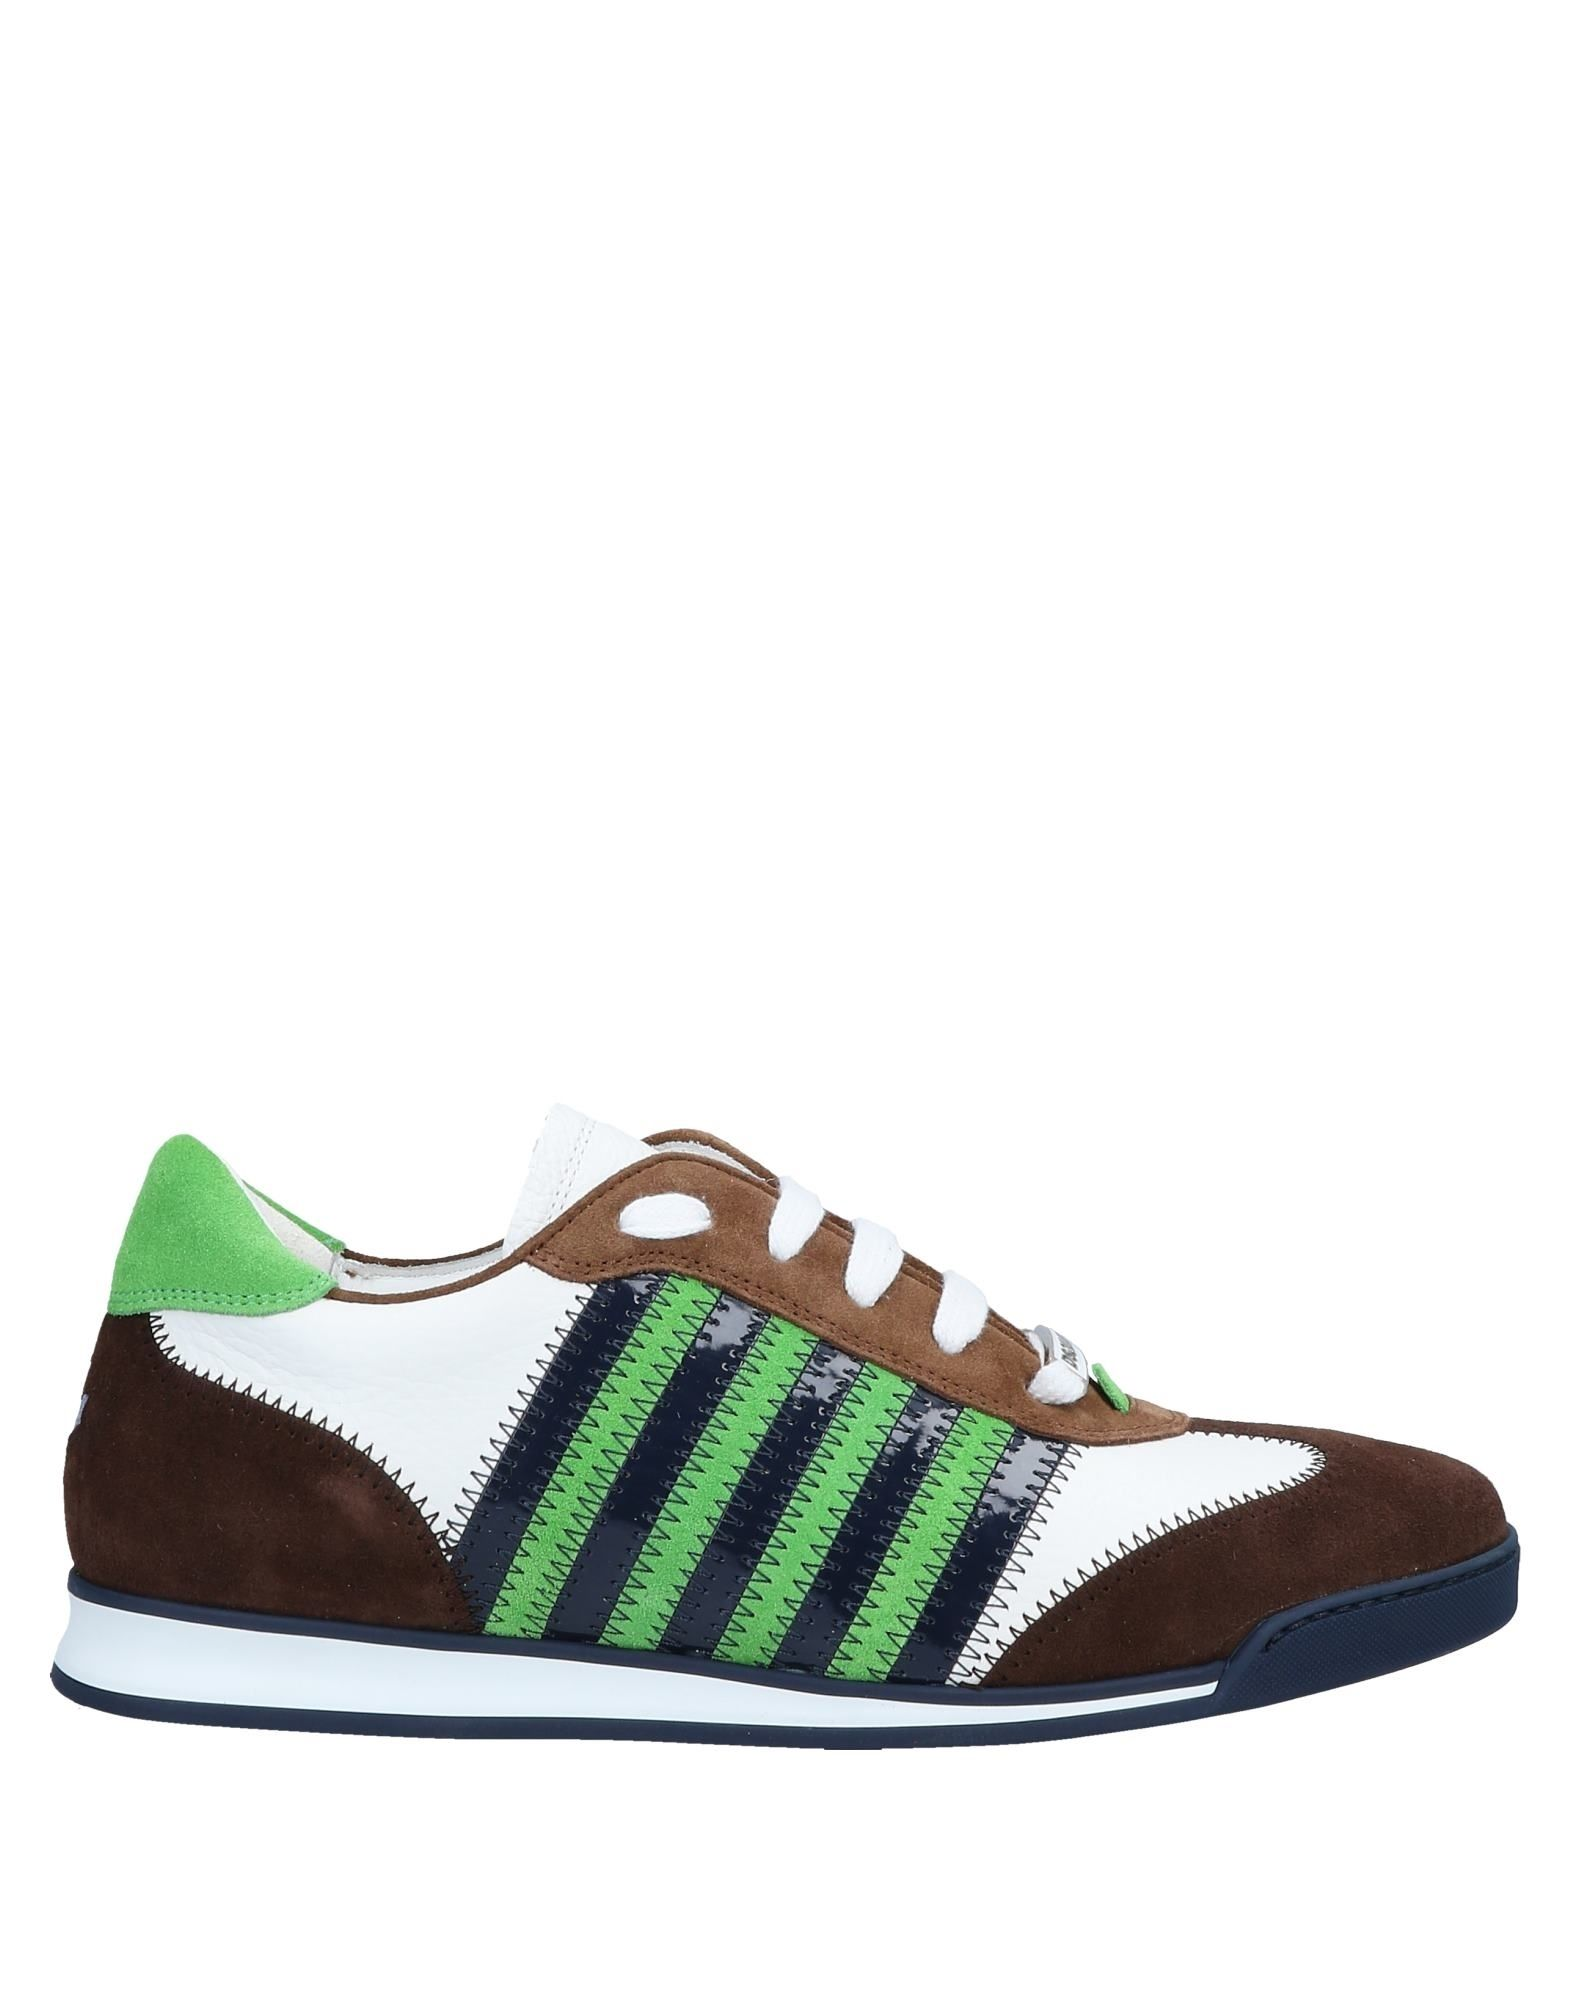 Dsquared2 Sneakers - Men Dsquared2 Sneakers online on 11553824IW  United Kingdom - 11553824IW on 5aaa8f